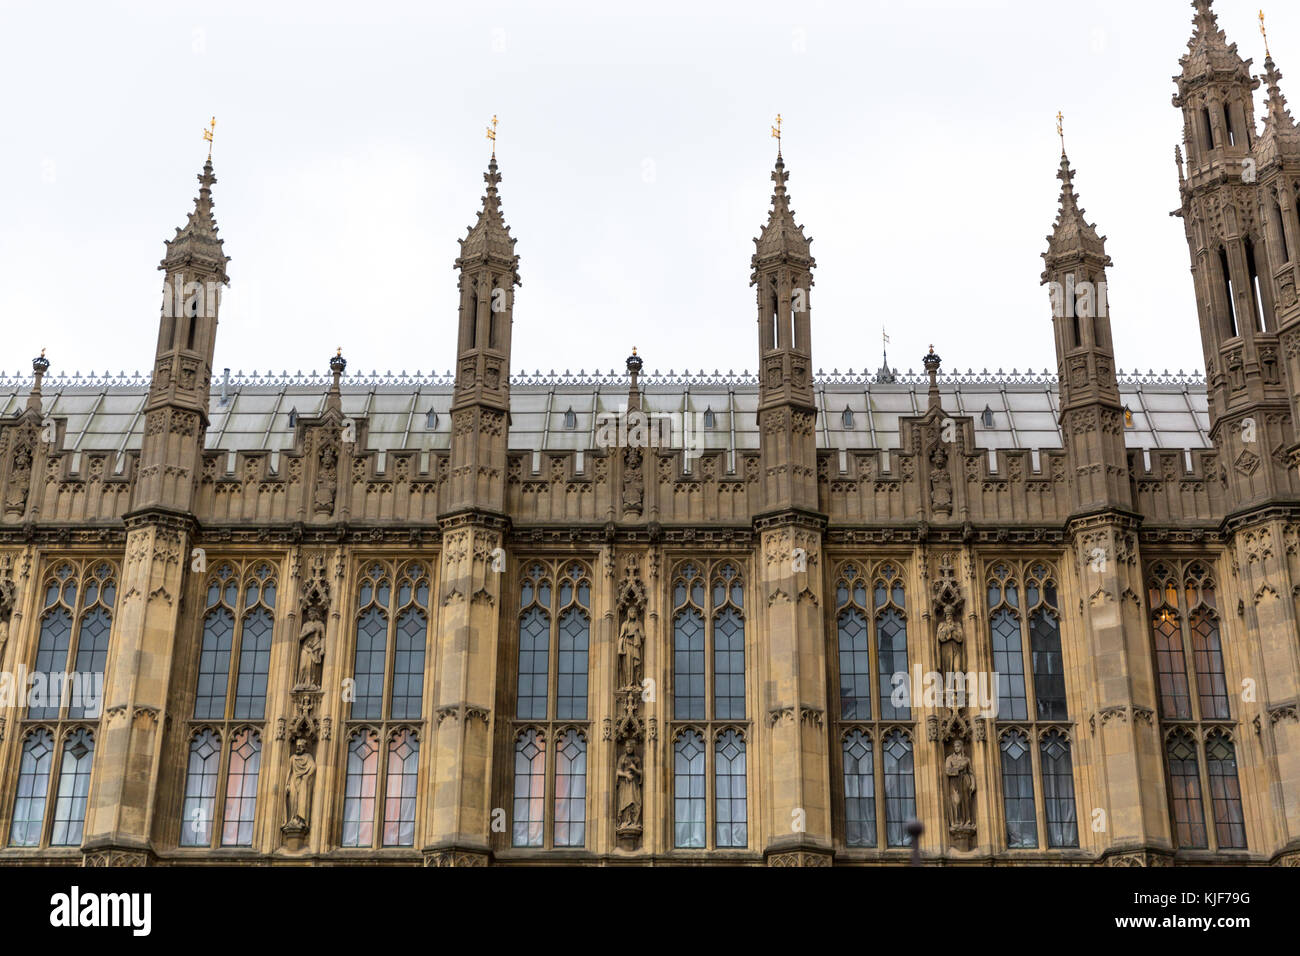 Detail shot of the House of Parliament in London, UK - Stock Image